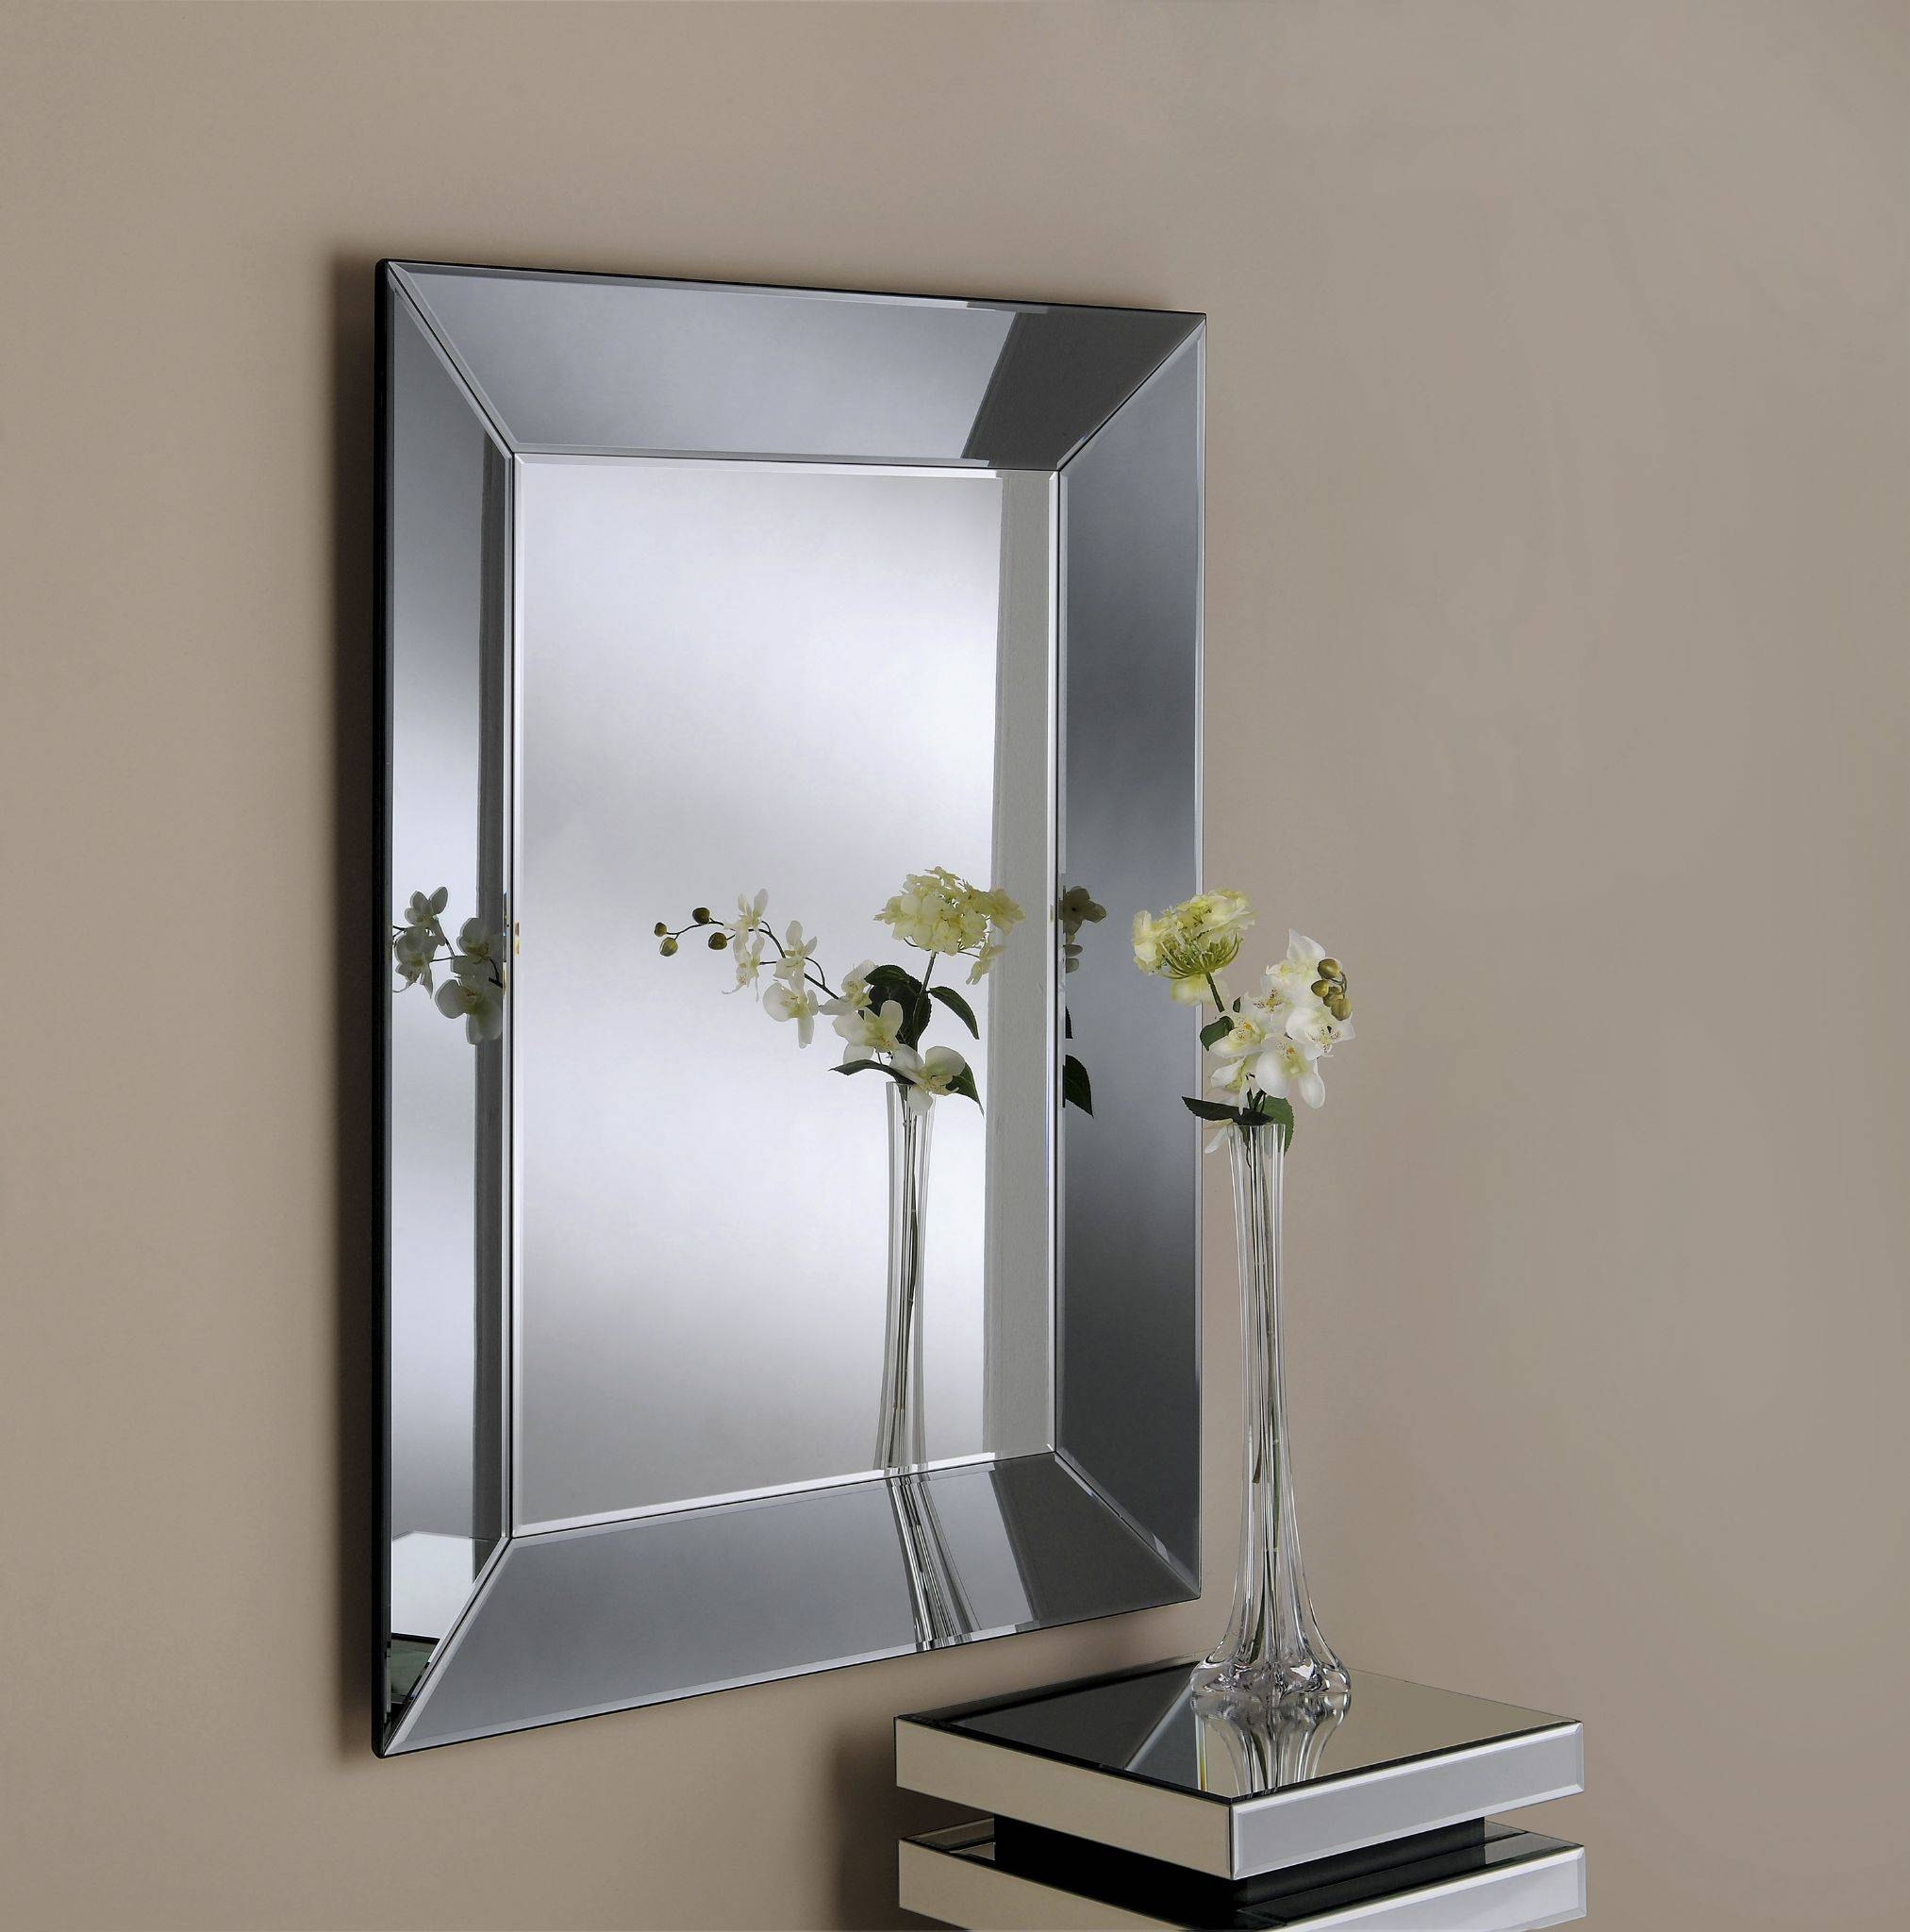 Bevelled Mirror As Indoor Decorative Touch | Lgilab | Modern With Regard To Vintage Bevelled Edge Mirrors (View 15 of 15)